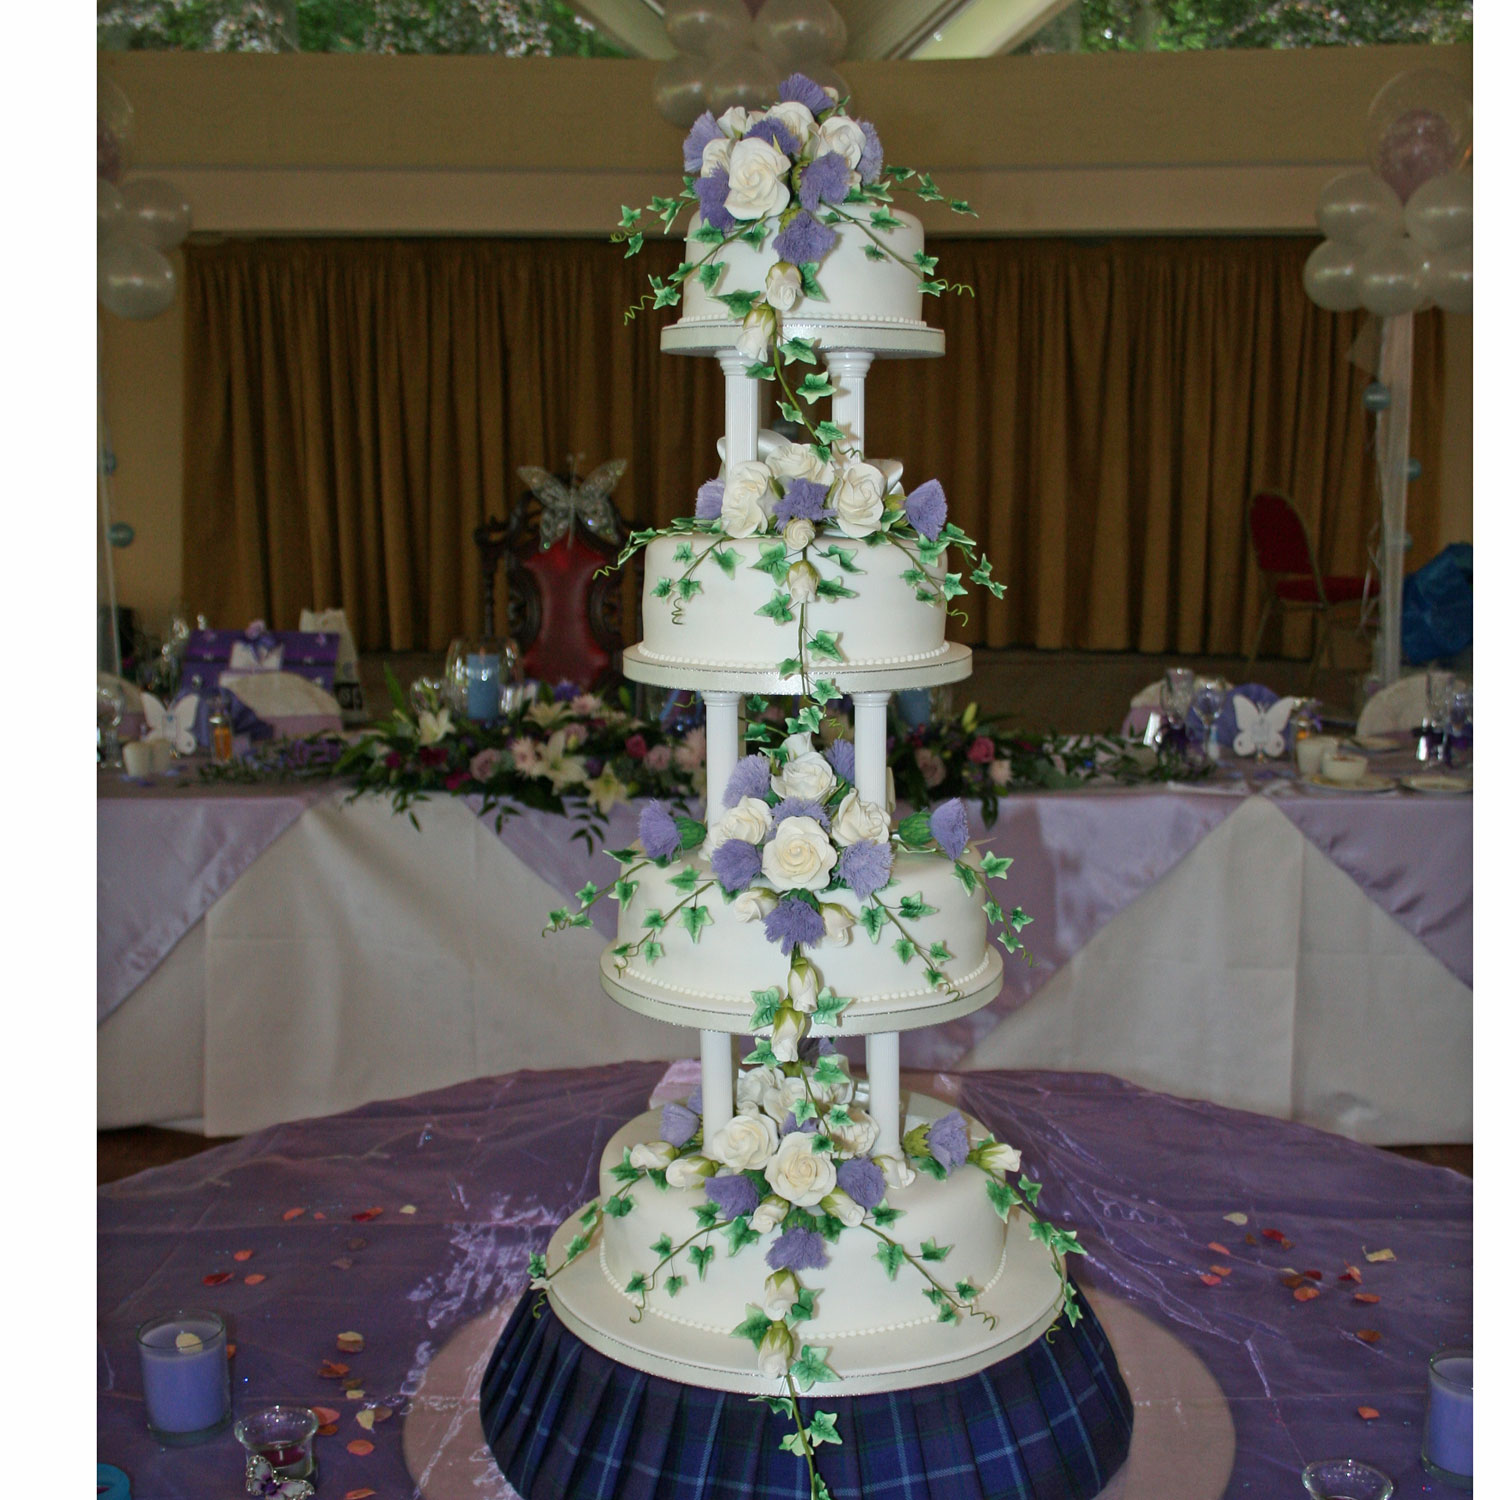 45 Wedding Cakes With Sugar Flowers That Look Stunningly: Charlene Scottish Wedding Cake With Tartan Cake Stand